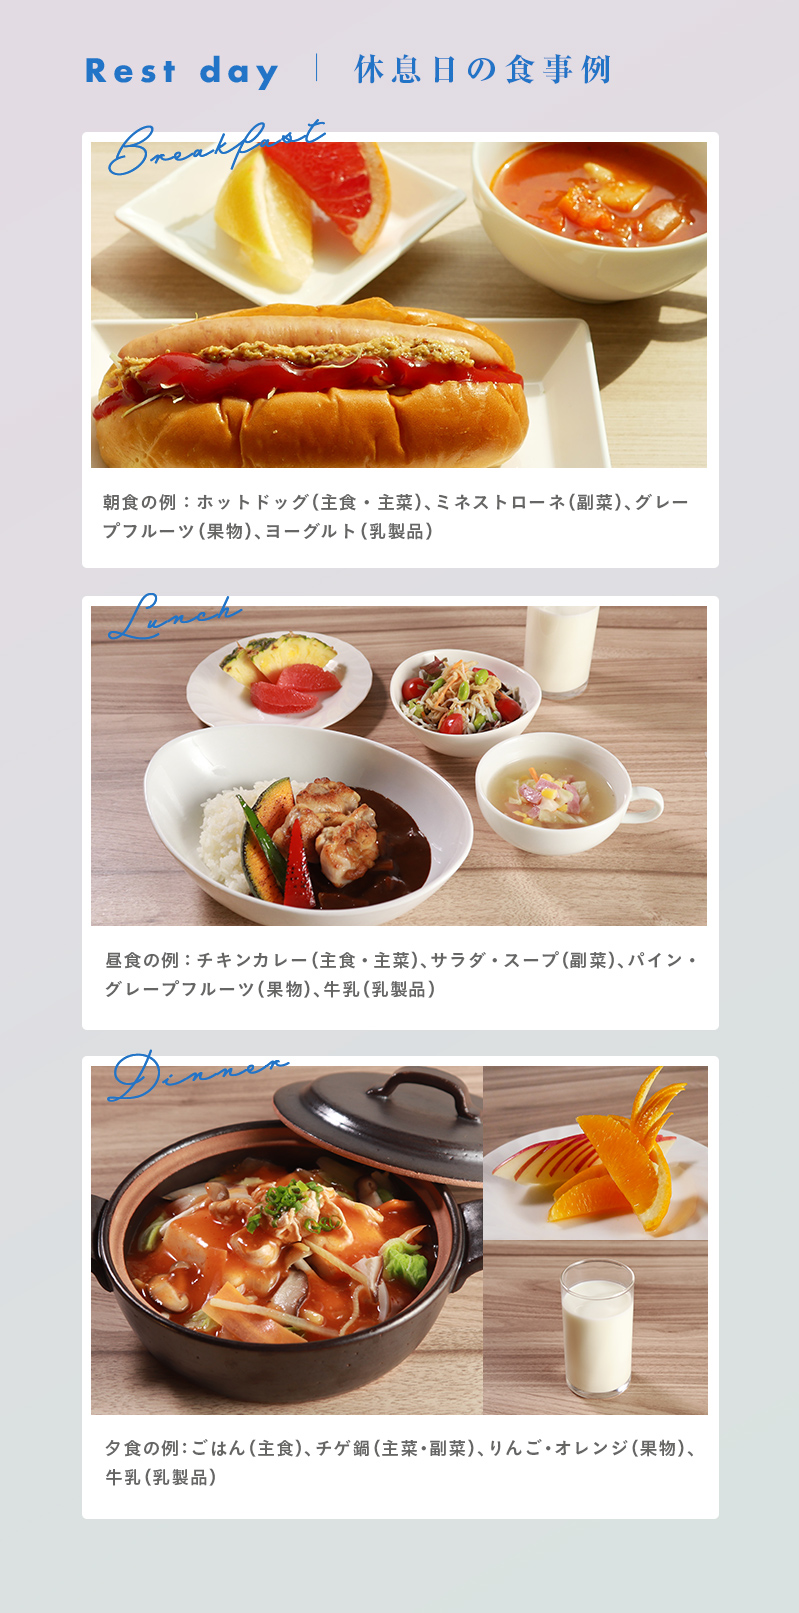 Rest day 休息日の食事例